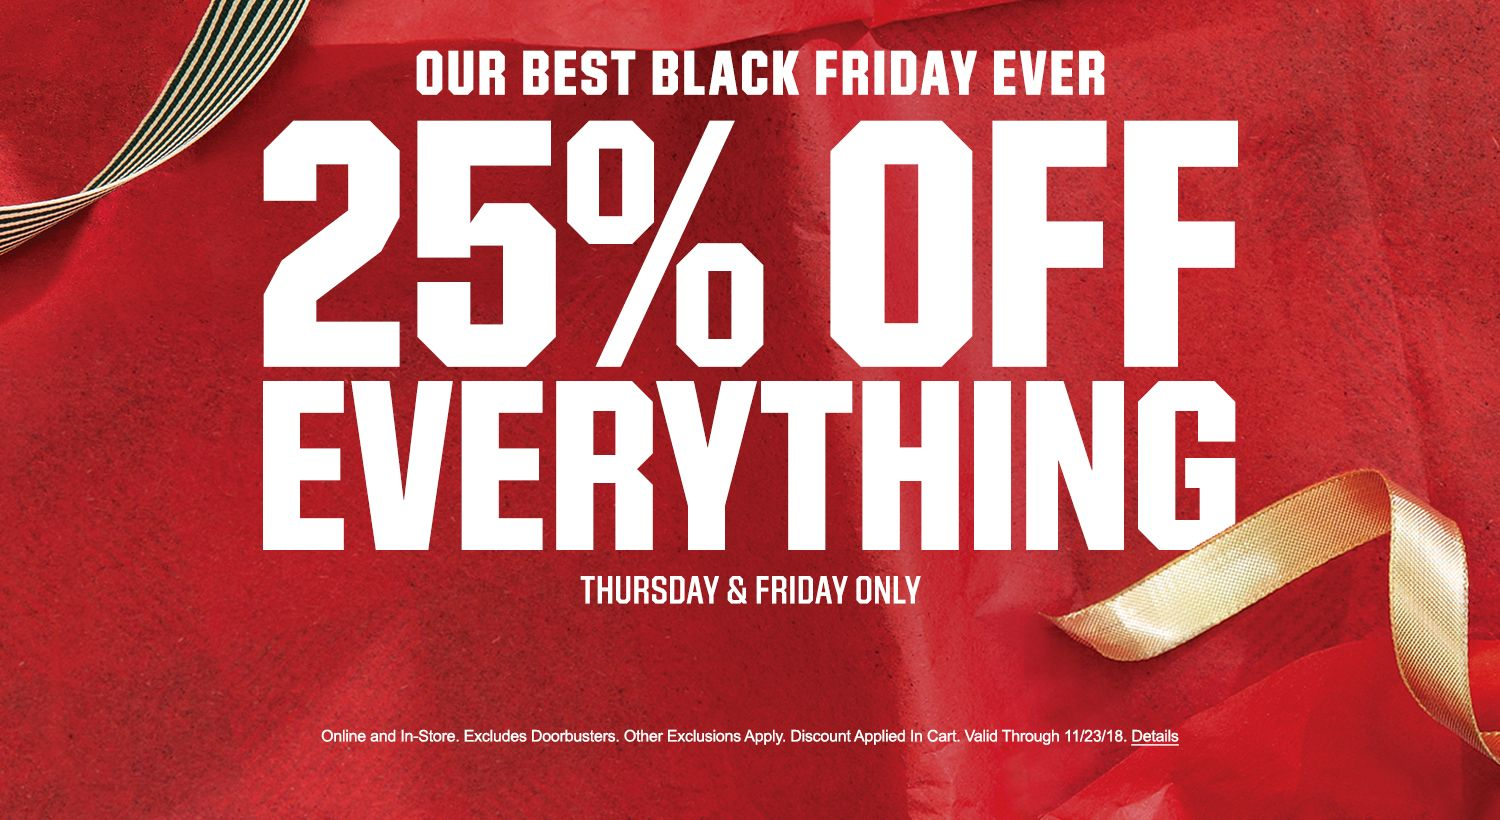 Our Best Black Friday Ever 25% Off Everything - Thursday & Friday Only